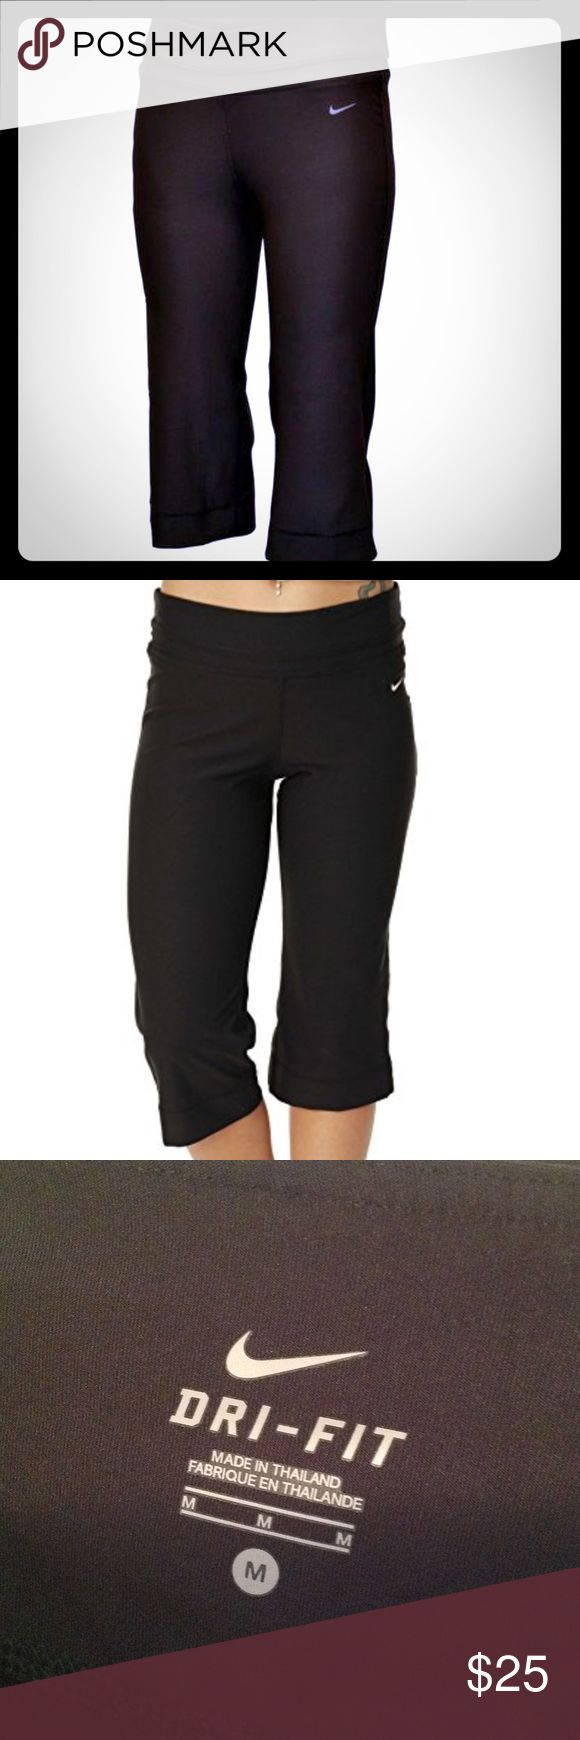 Nike Capri leggings Step into the now with the sleek style and performance of the Nike Regular FIT Low Rise Women's Capris, featuring breathable Dri-FIT for cool-wearing comfort and a straight, fitted leg with a slight flair at the bottom hem for a flattering, feminine fit. Triangle gusset A wide waistband delivers fit with built-in key pocket inner waist band Dri-FIT 88% polyester/12% spandex. Only worn once, like brand new!!! Nike Pants Capris